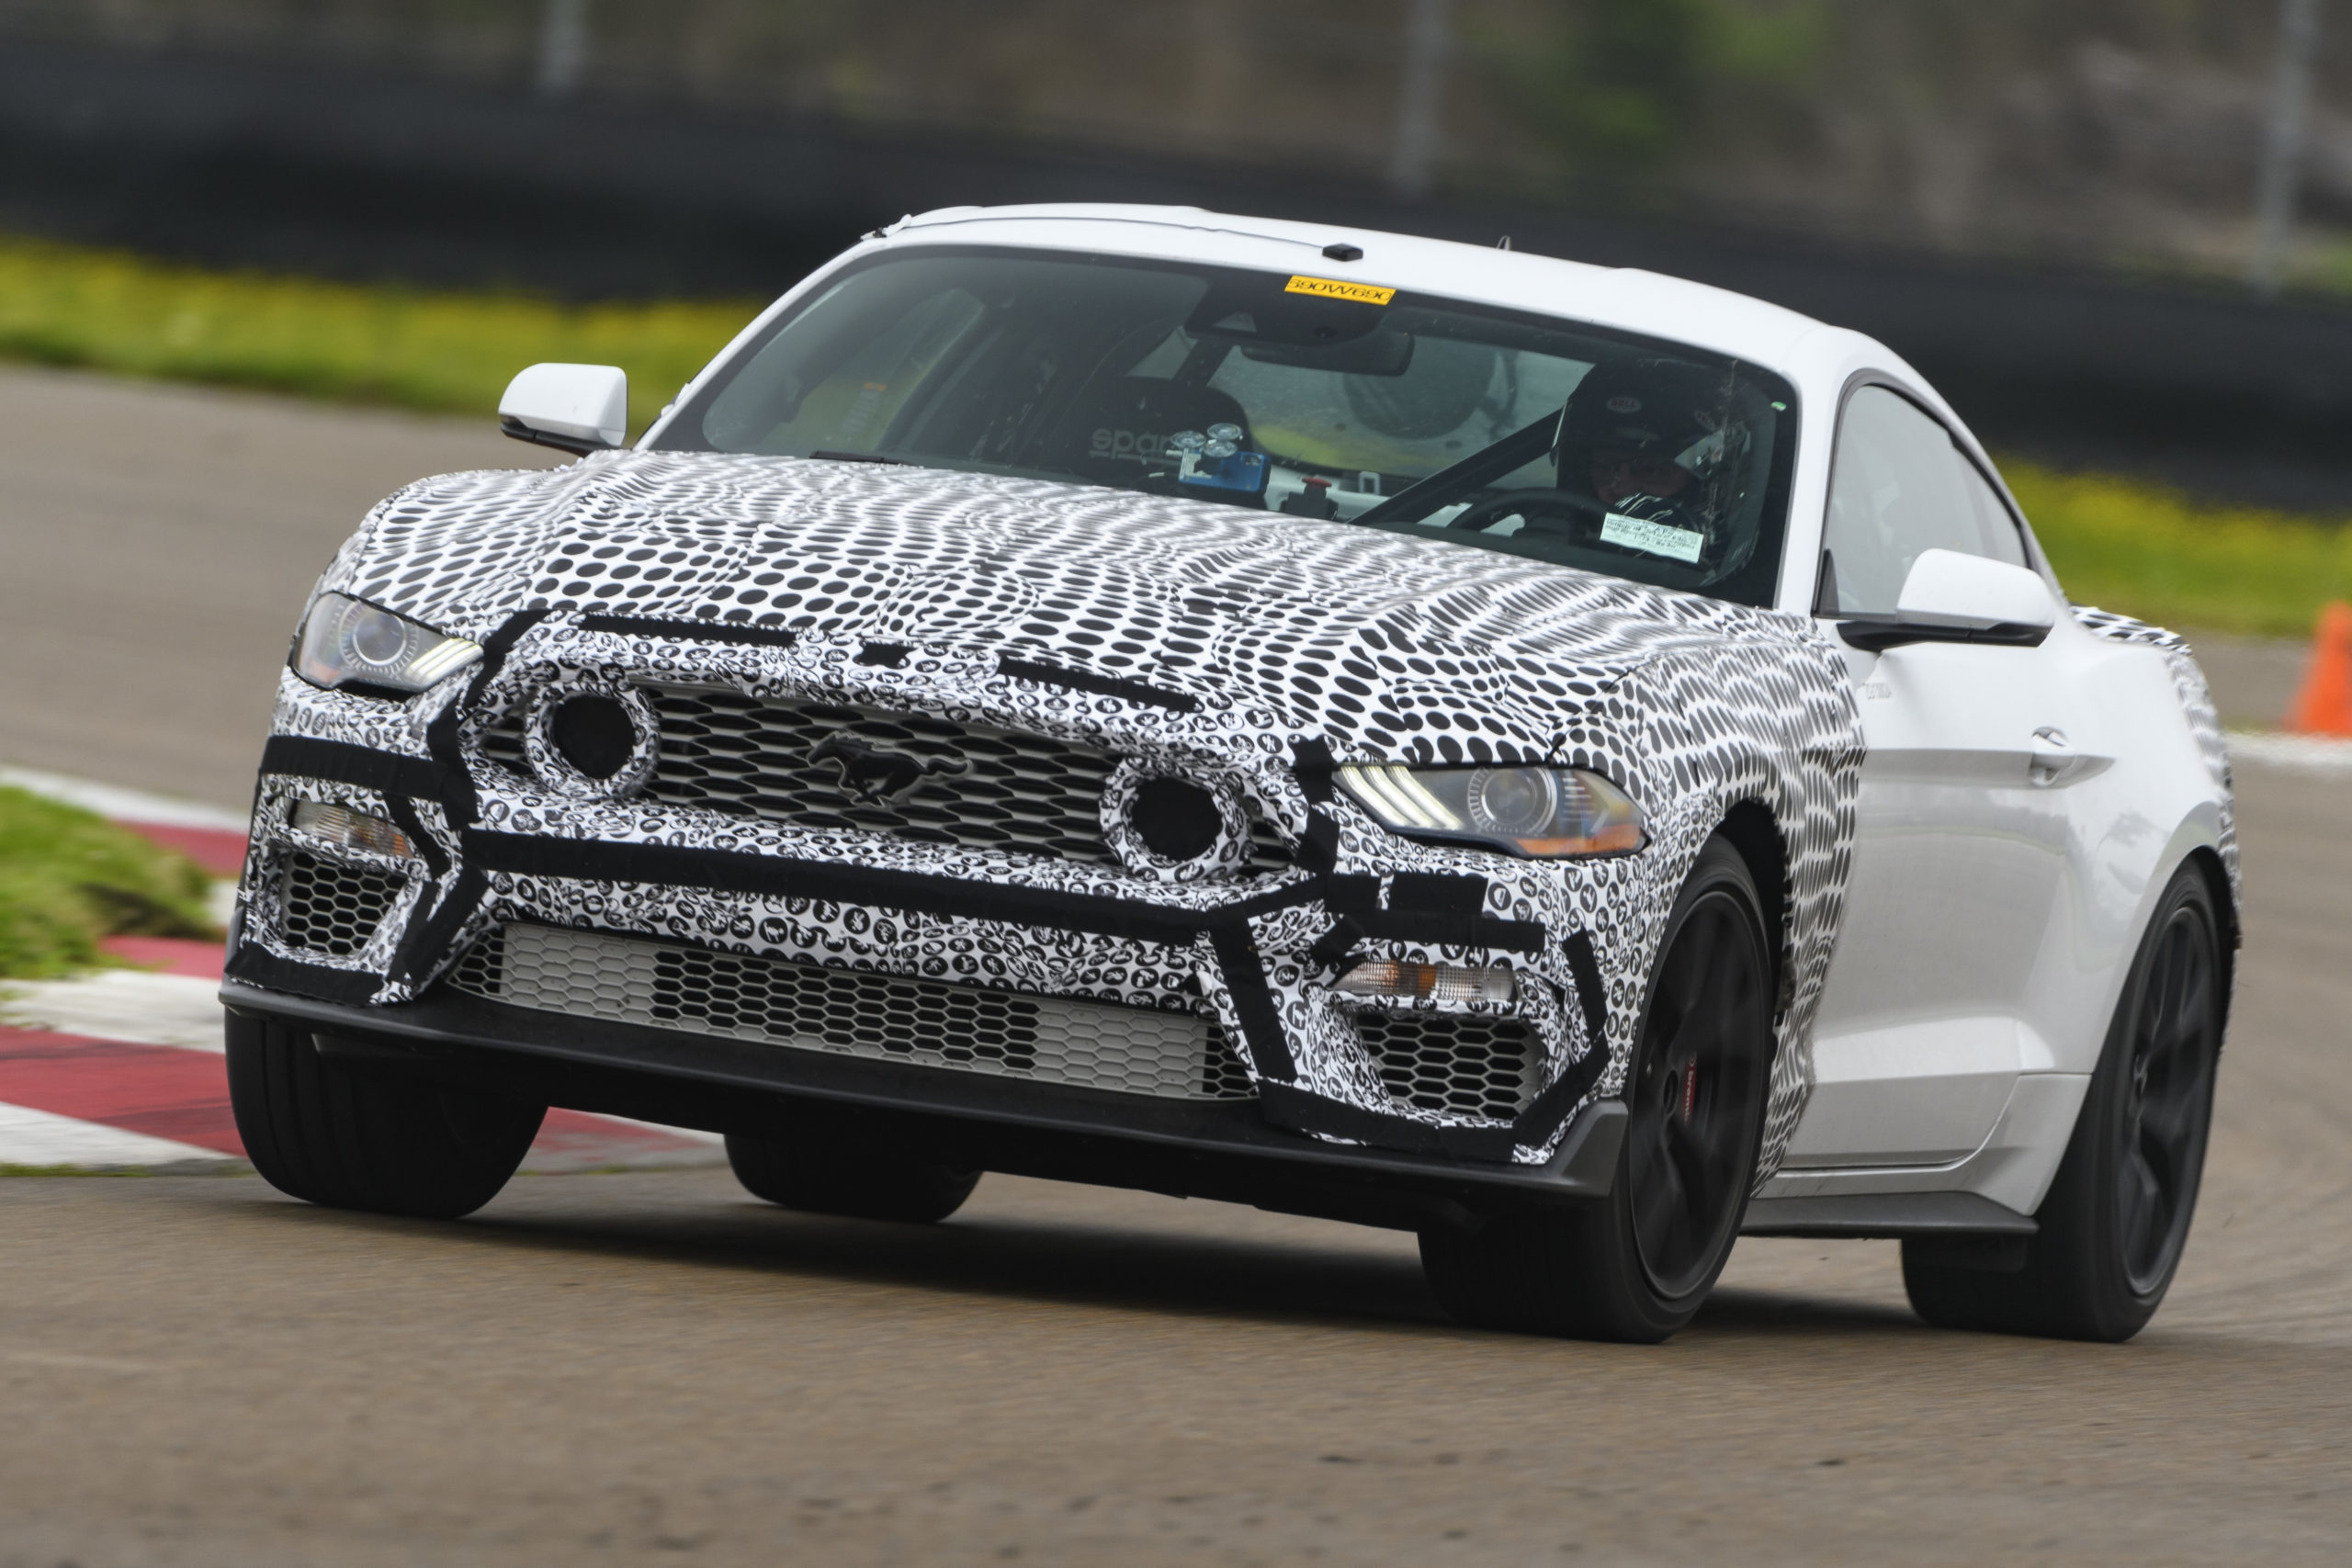 2021 Ford Mustang Mach 1: This Ain't No Electric SUV